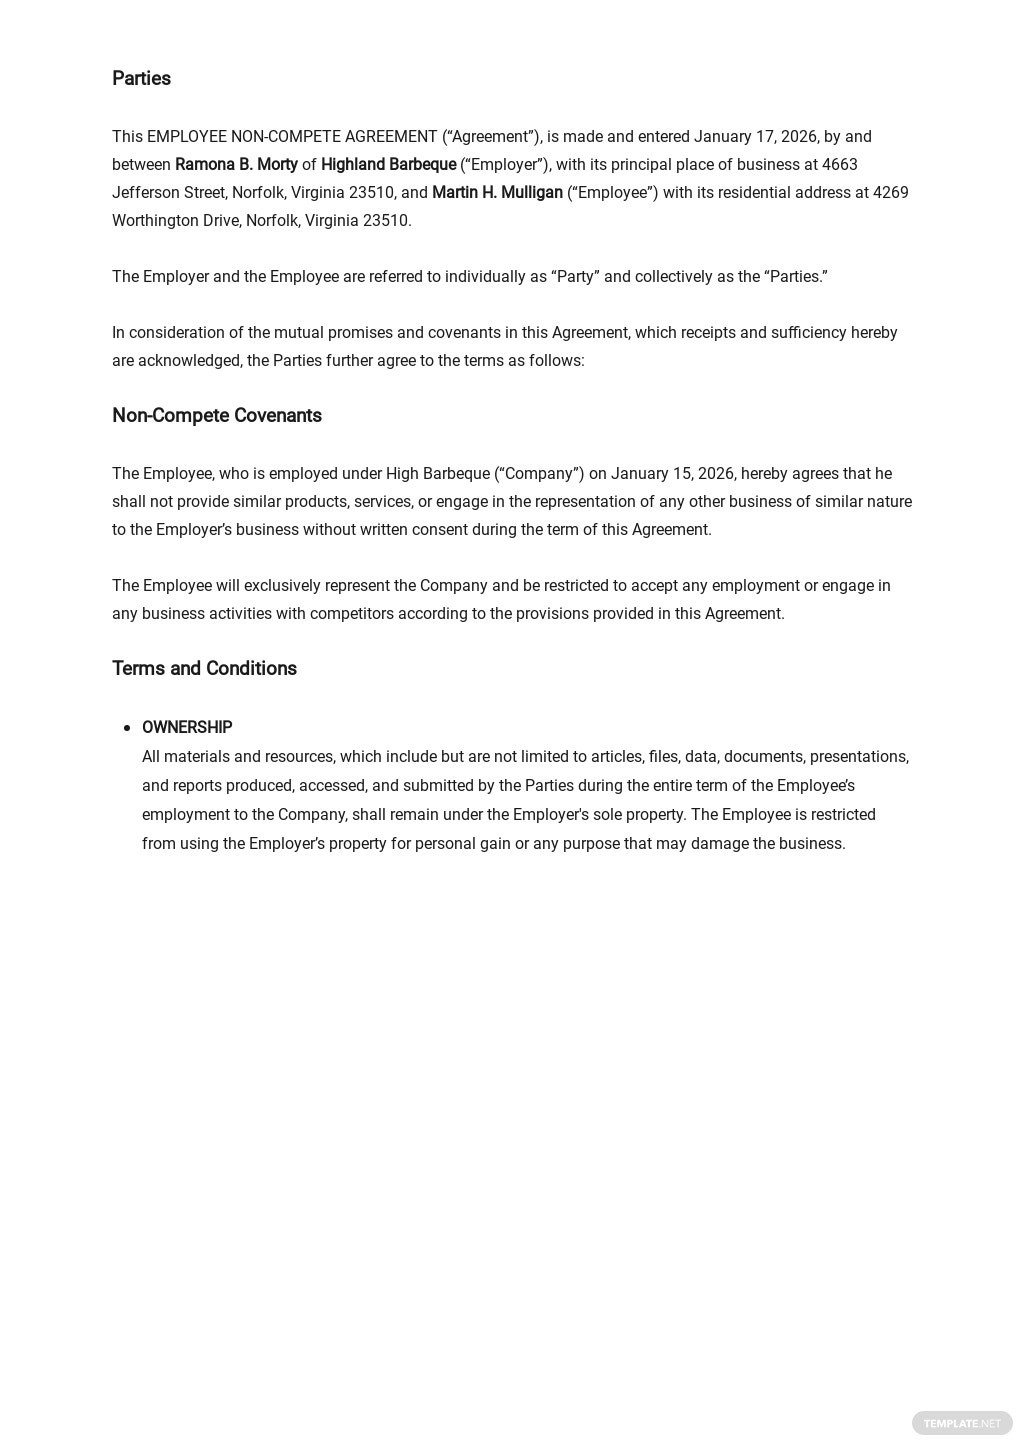 Employee Non Compete Agreement Template 1.jpe